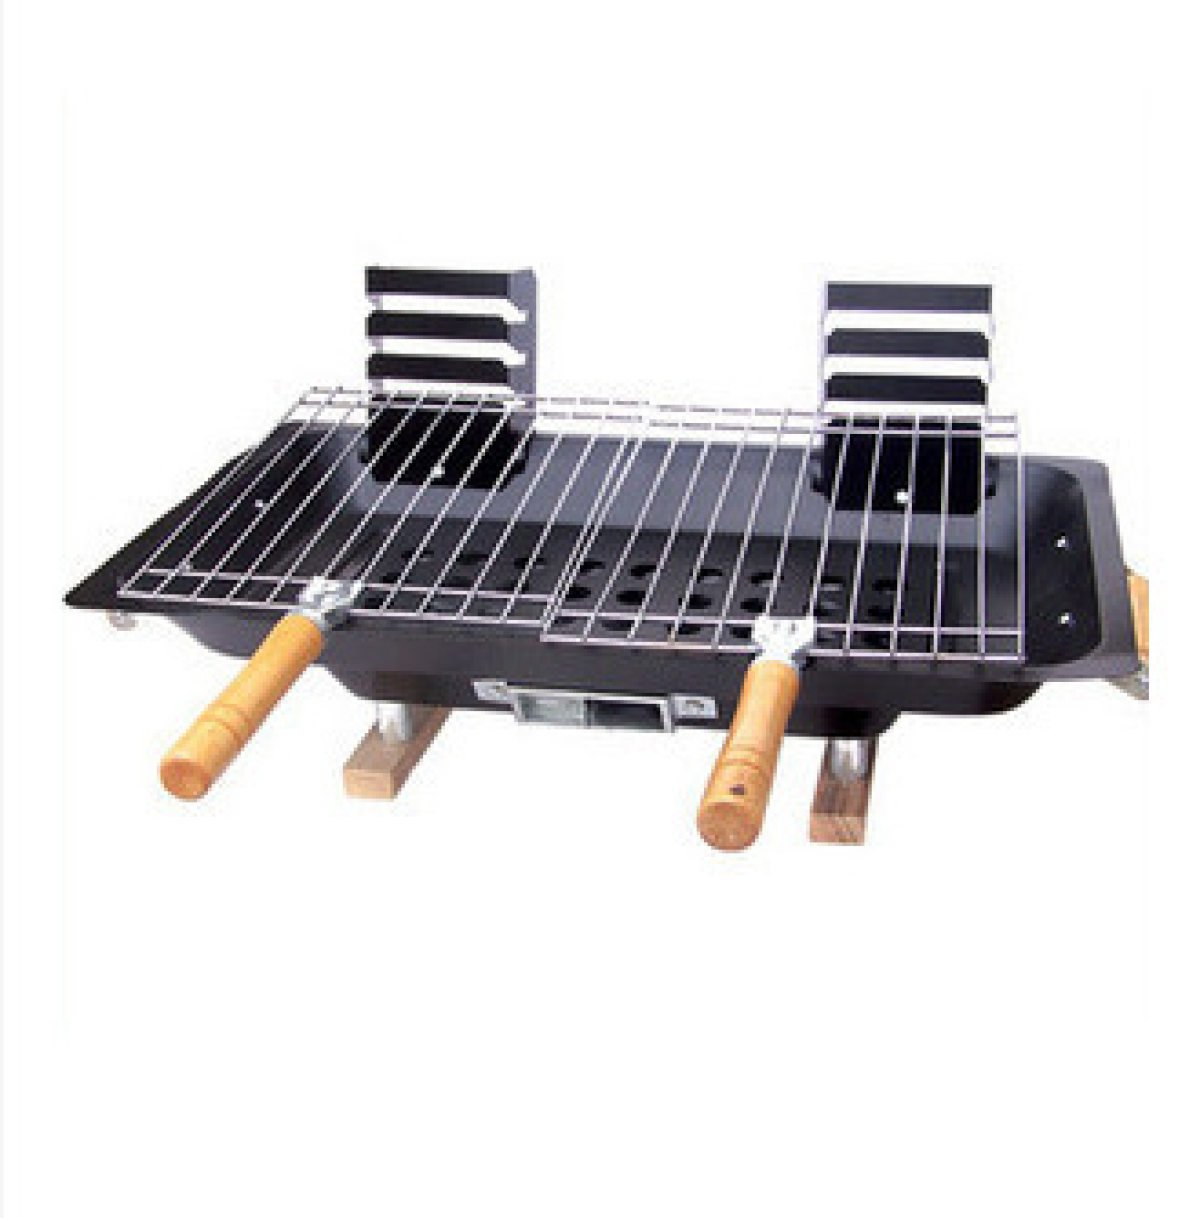 Outdoor Barbecue Grill Startseite Grill Paar Barbecue Pits Outdoor Home Grill